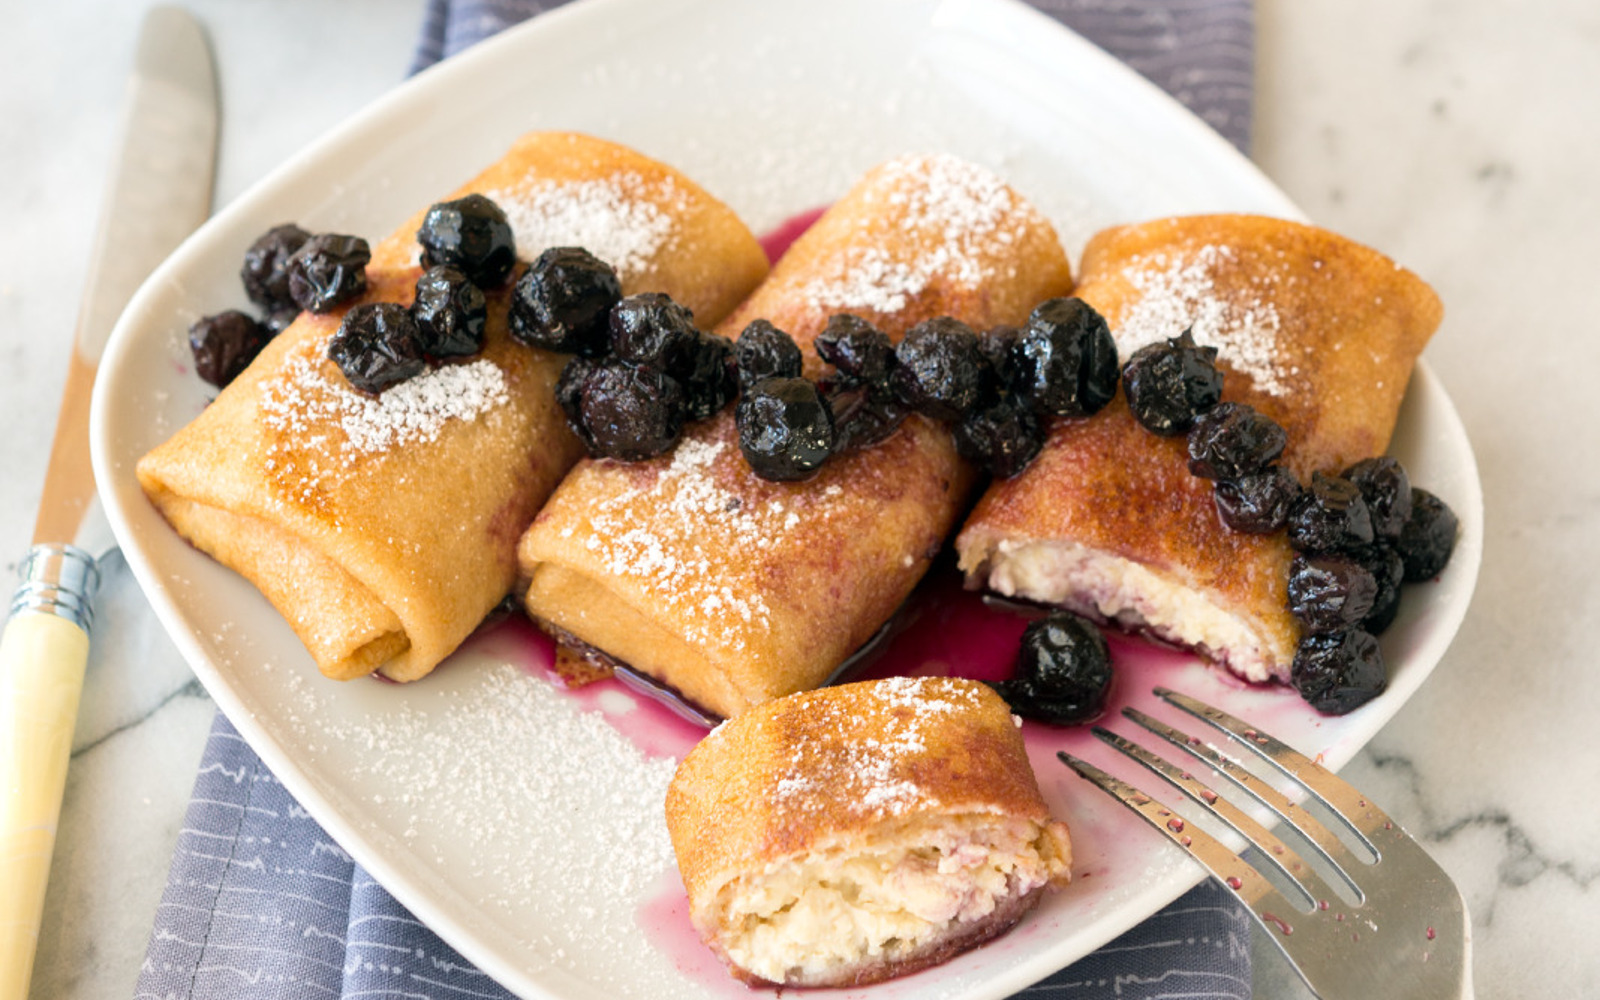 Vegan Cream Cheese Blintzes With Blueberry Drizzle